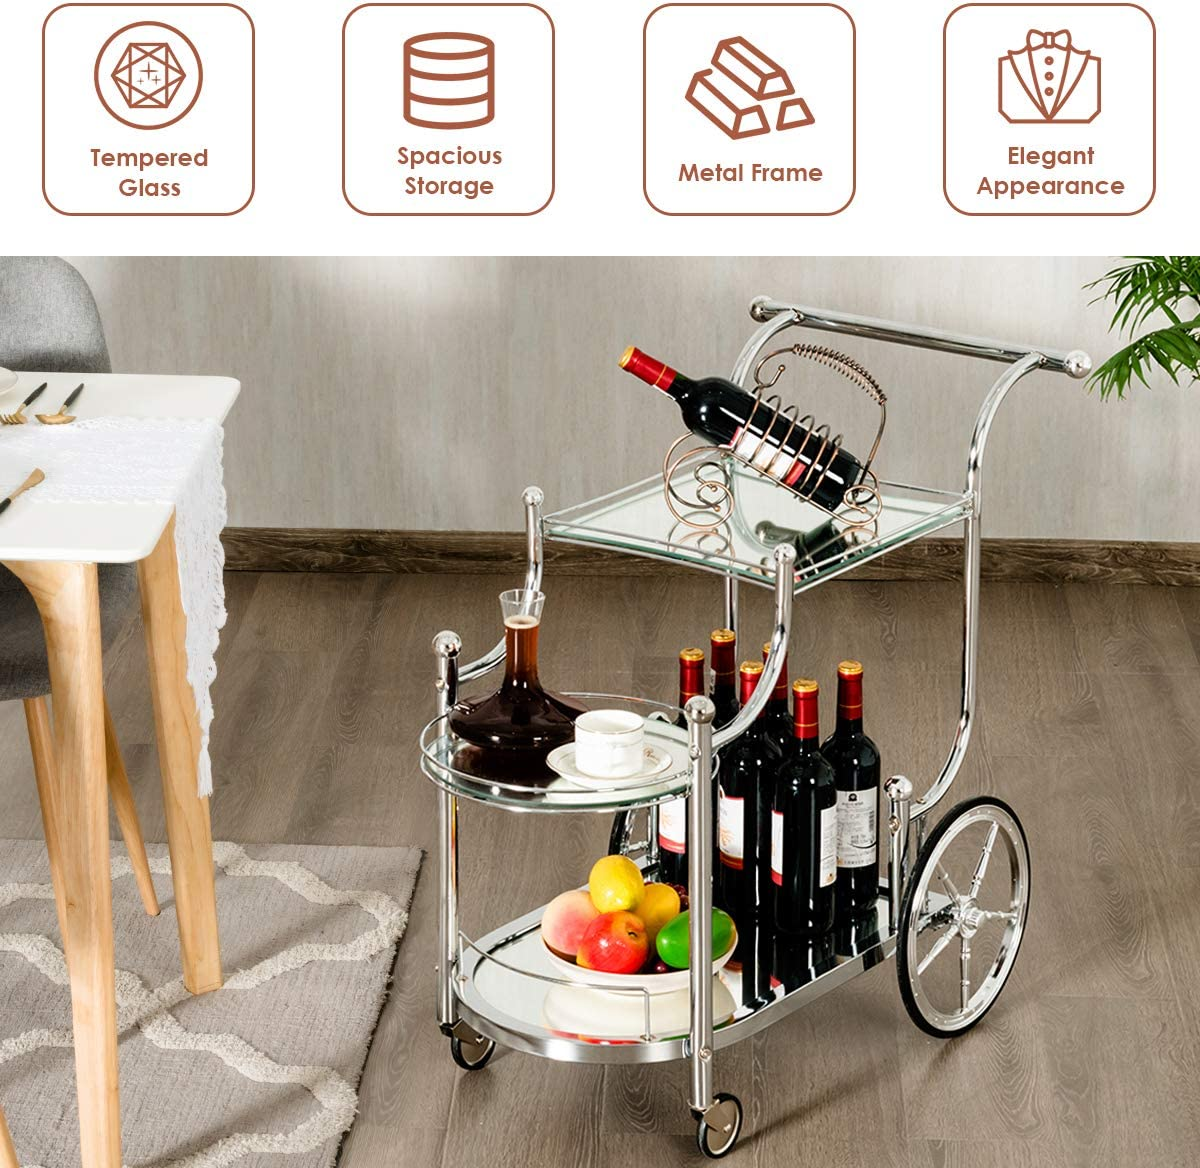 Tangkula Rolling Bar Cart, Metal Serving Cart with Tempered Glass, 3-Tier Glass Bar and Serving Cart, Tea Serving Bar Cart with 4 Wheels Silver